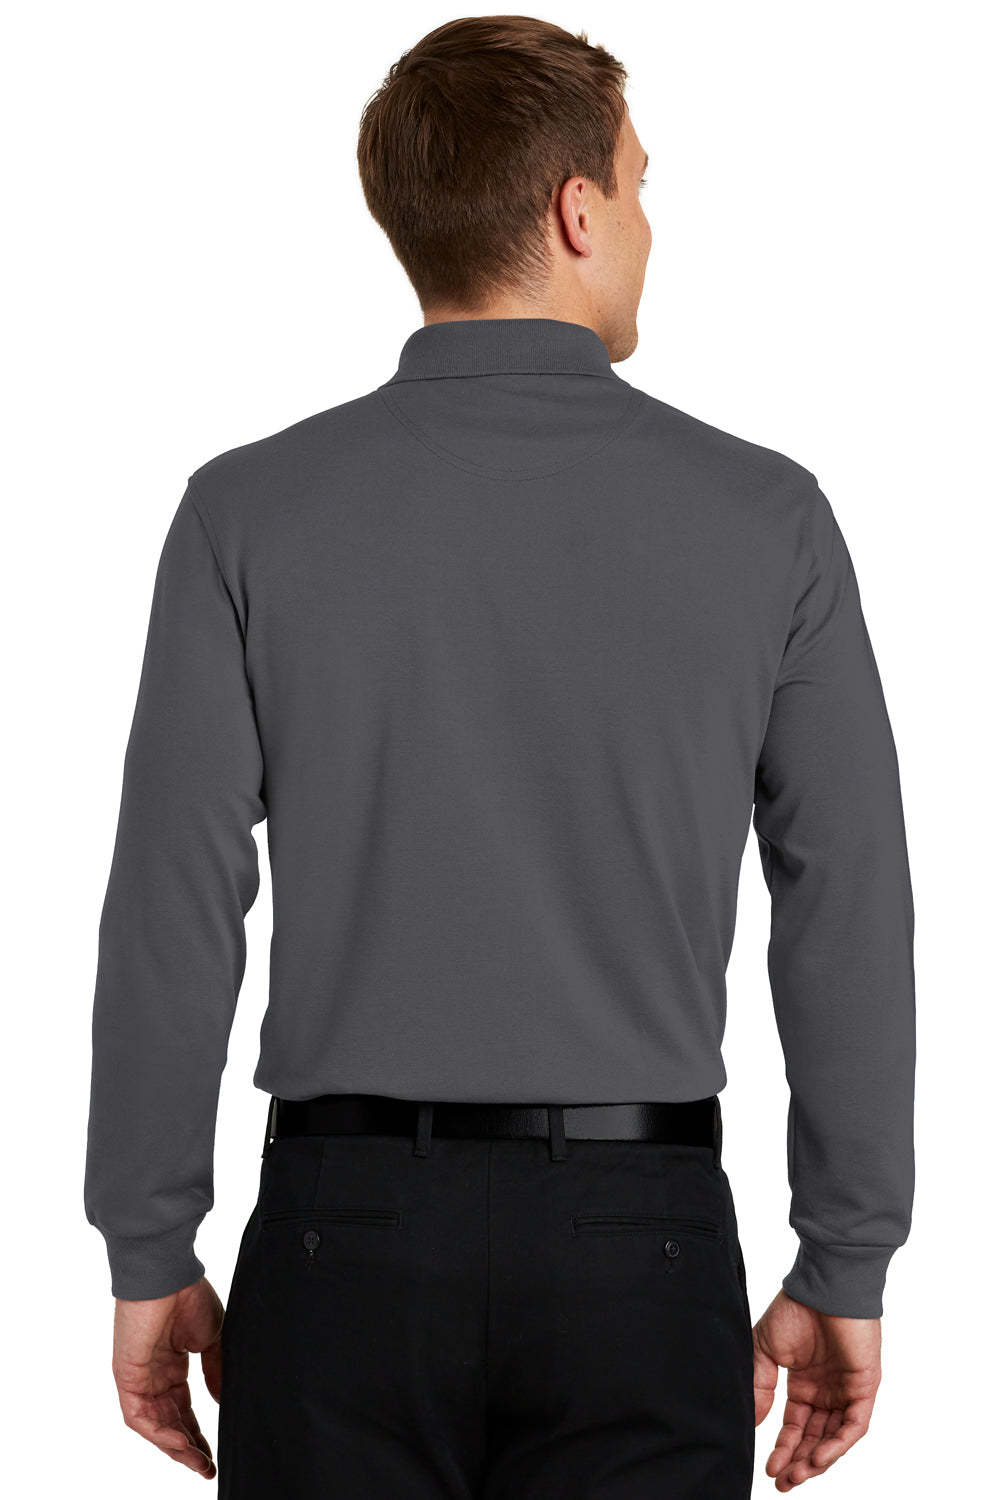 Port Authority K455LS Mens Rapid Dry Moisture Wicking Long Sleeve Polo Shirt Charcoal Grey Back